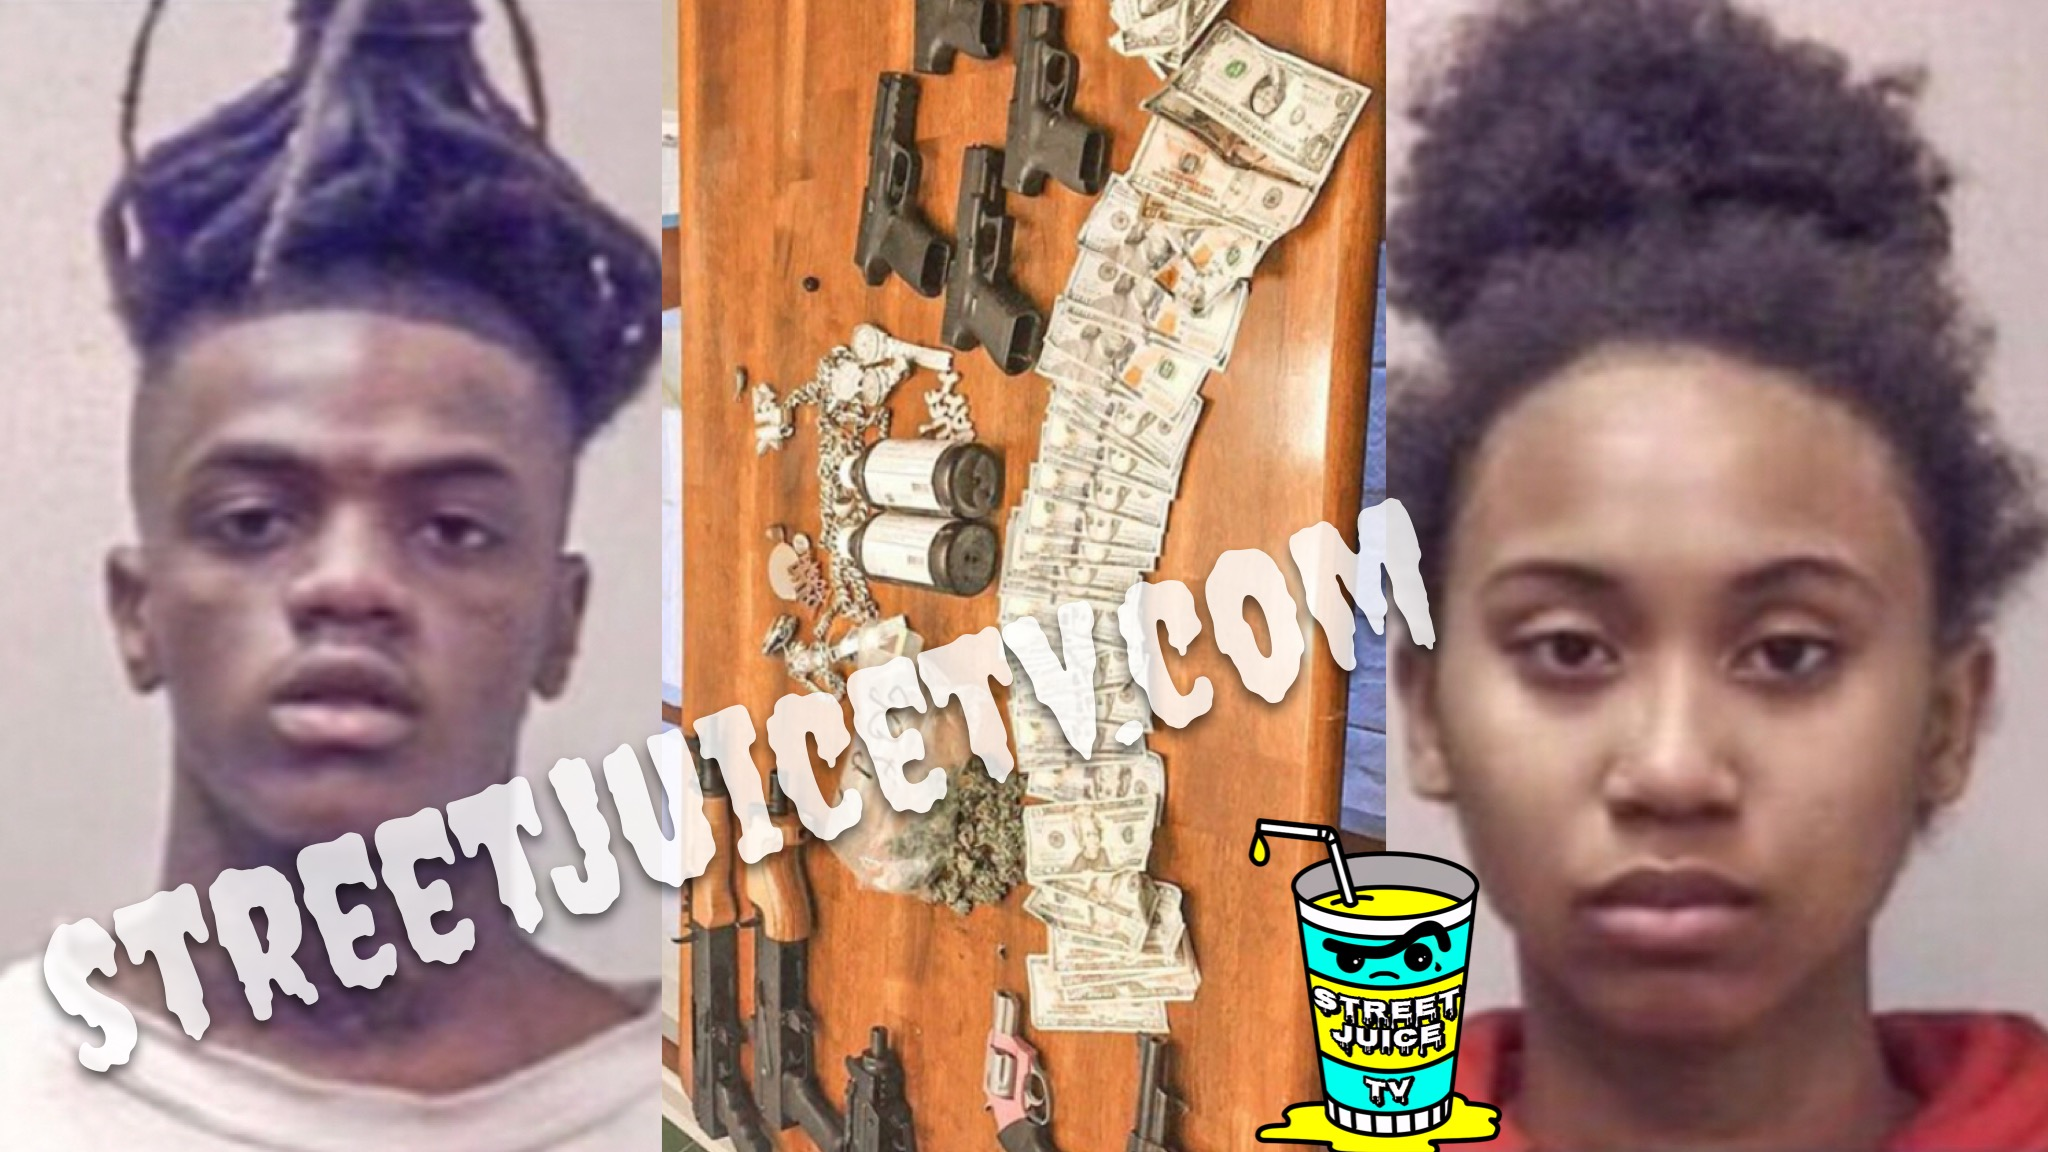 JAYDAYOUNGAN AND PREGNANT GF ARRESTED ON GUN AND DRUG CHARGES IN GEORGIA